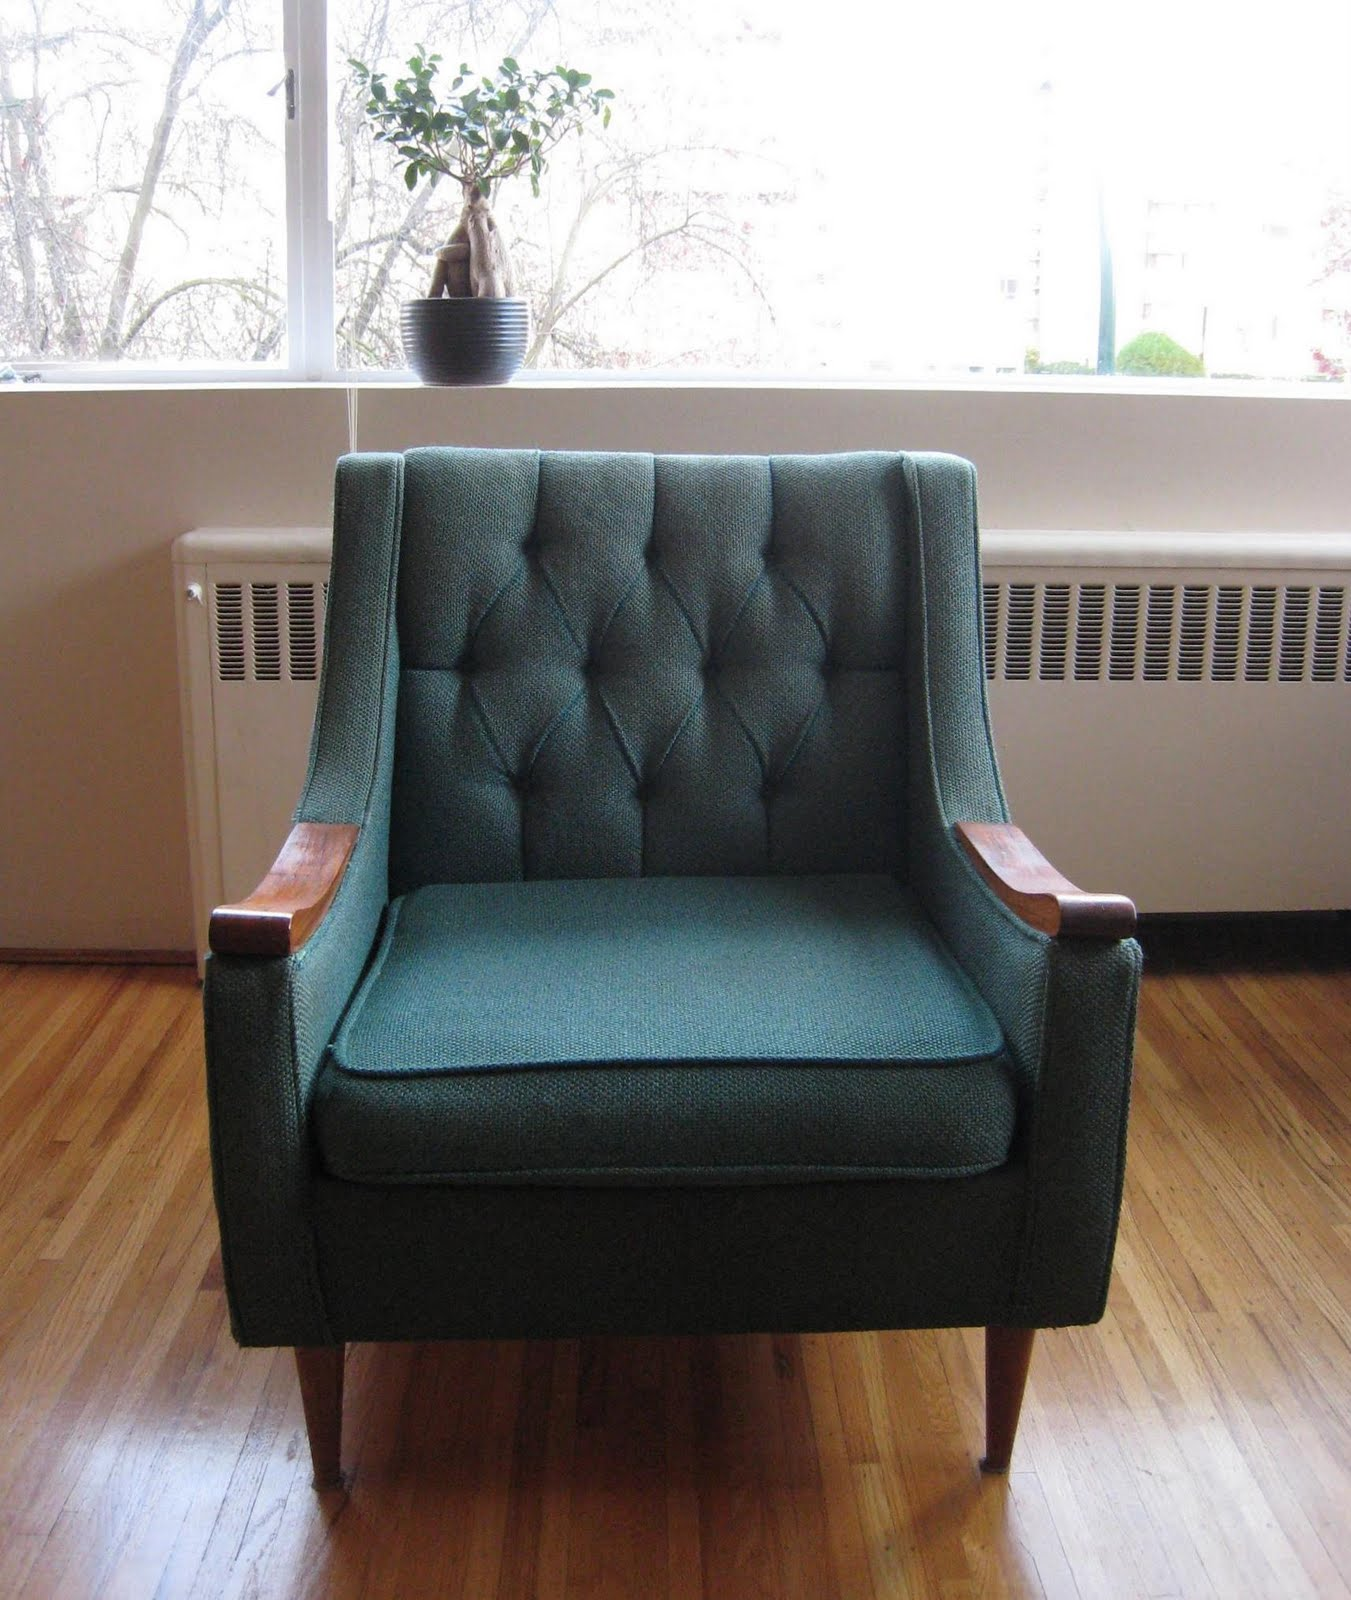 Six Balloons Vintage Delights Mid Century Modern Chair